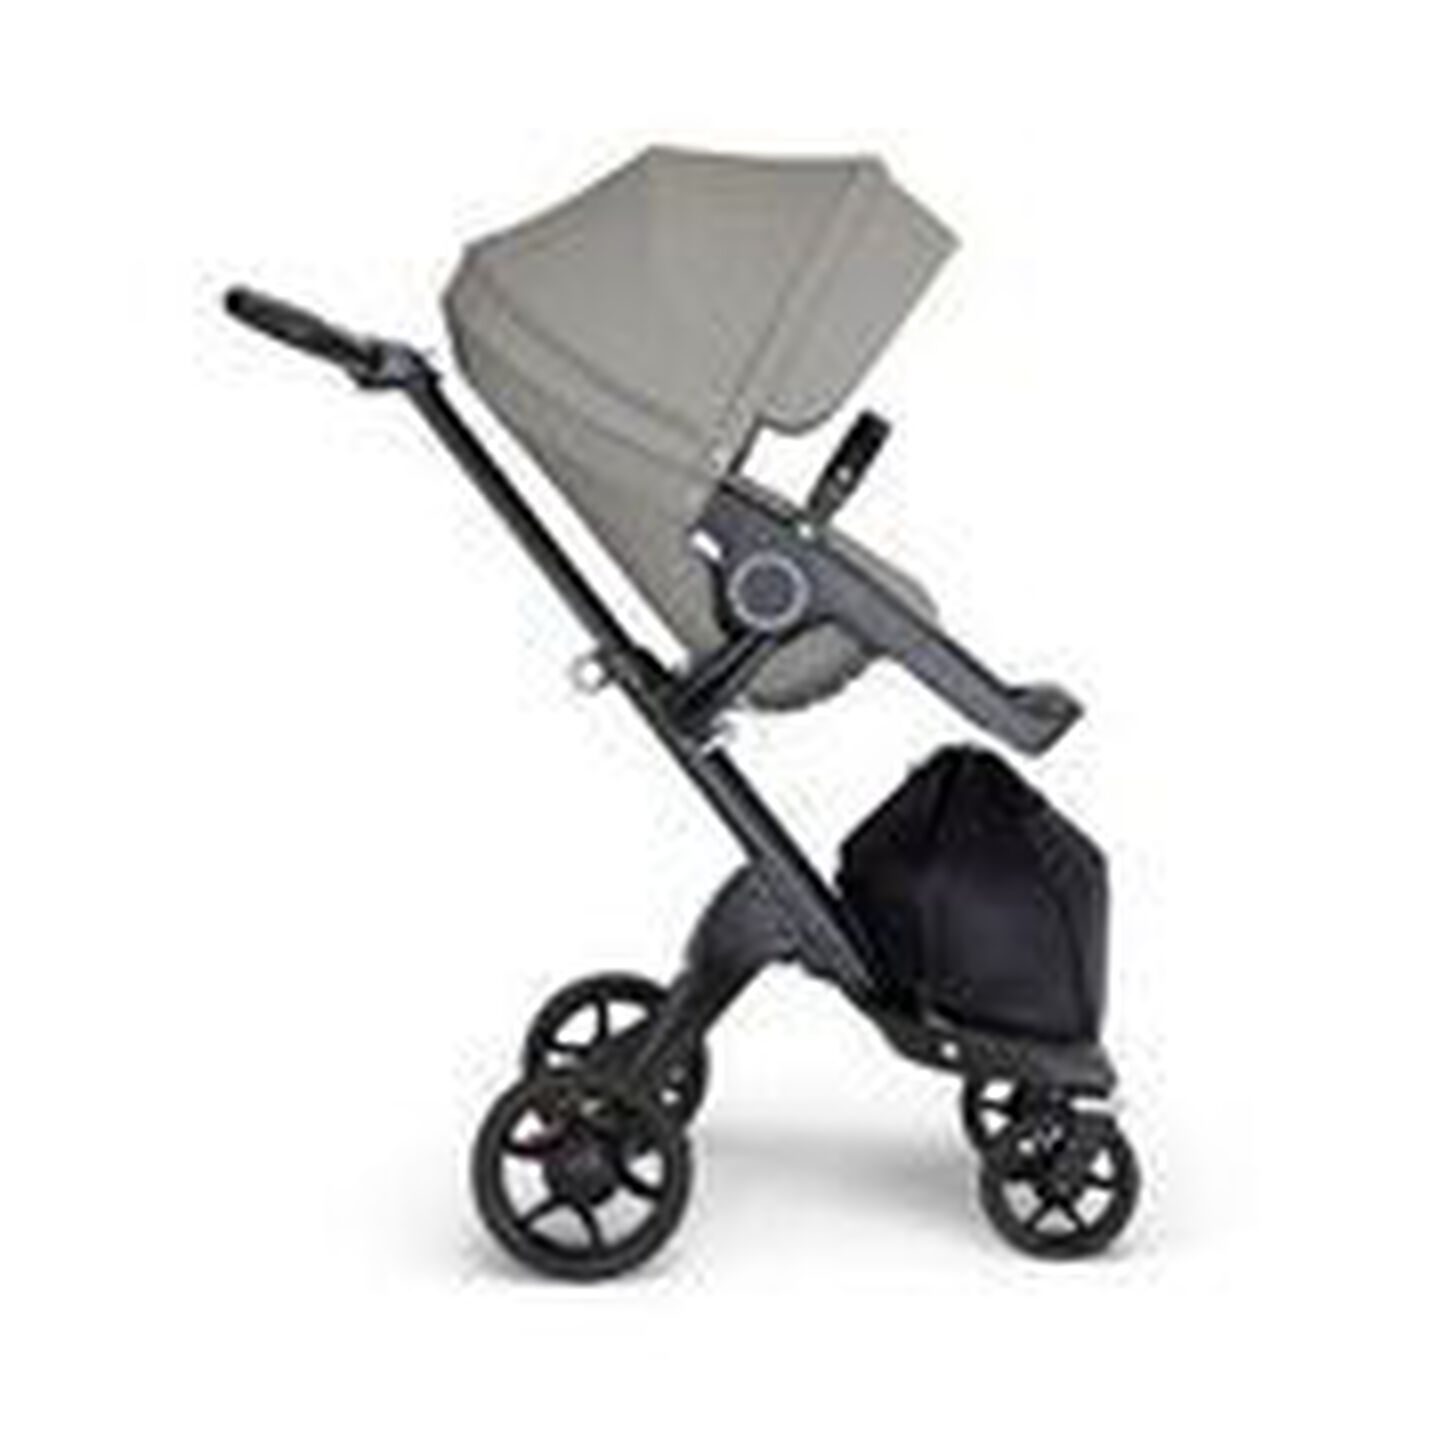 Stokke® Xplory® Black Chassis w Black Handle Brushed Grey, Brushed Grey, mainview